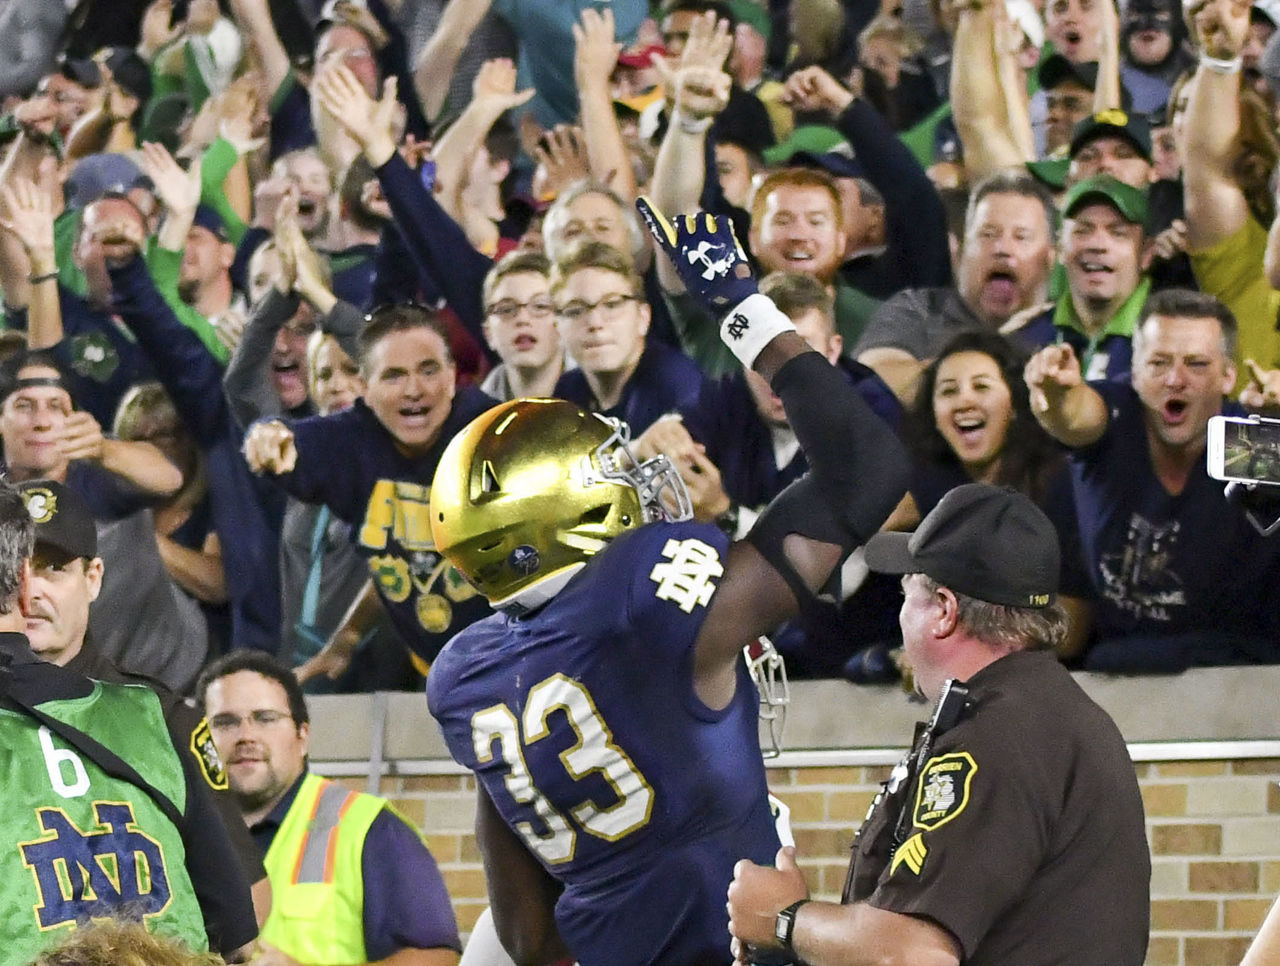 Cropped 2017 10 22t033305z 1728389311 nocid rtrmadp 3 ncaa football southern california at notre dame